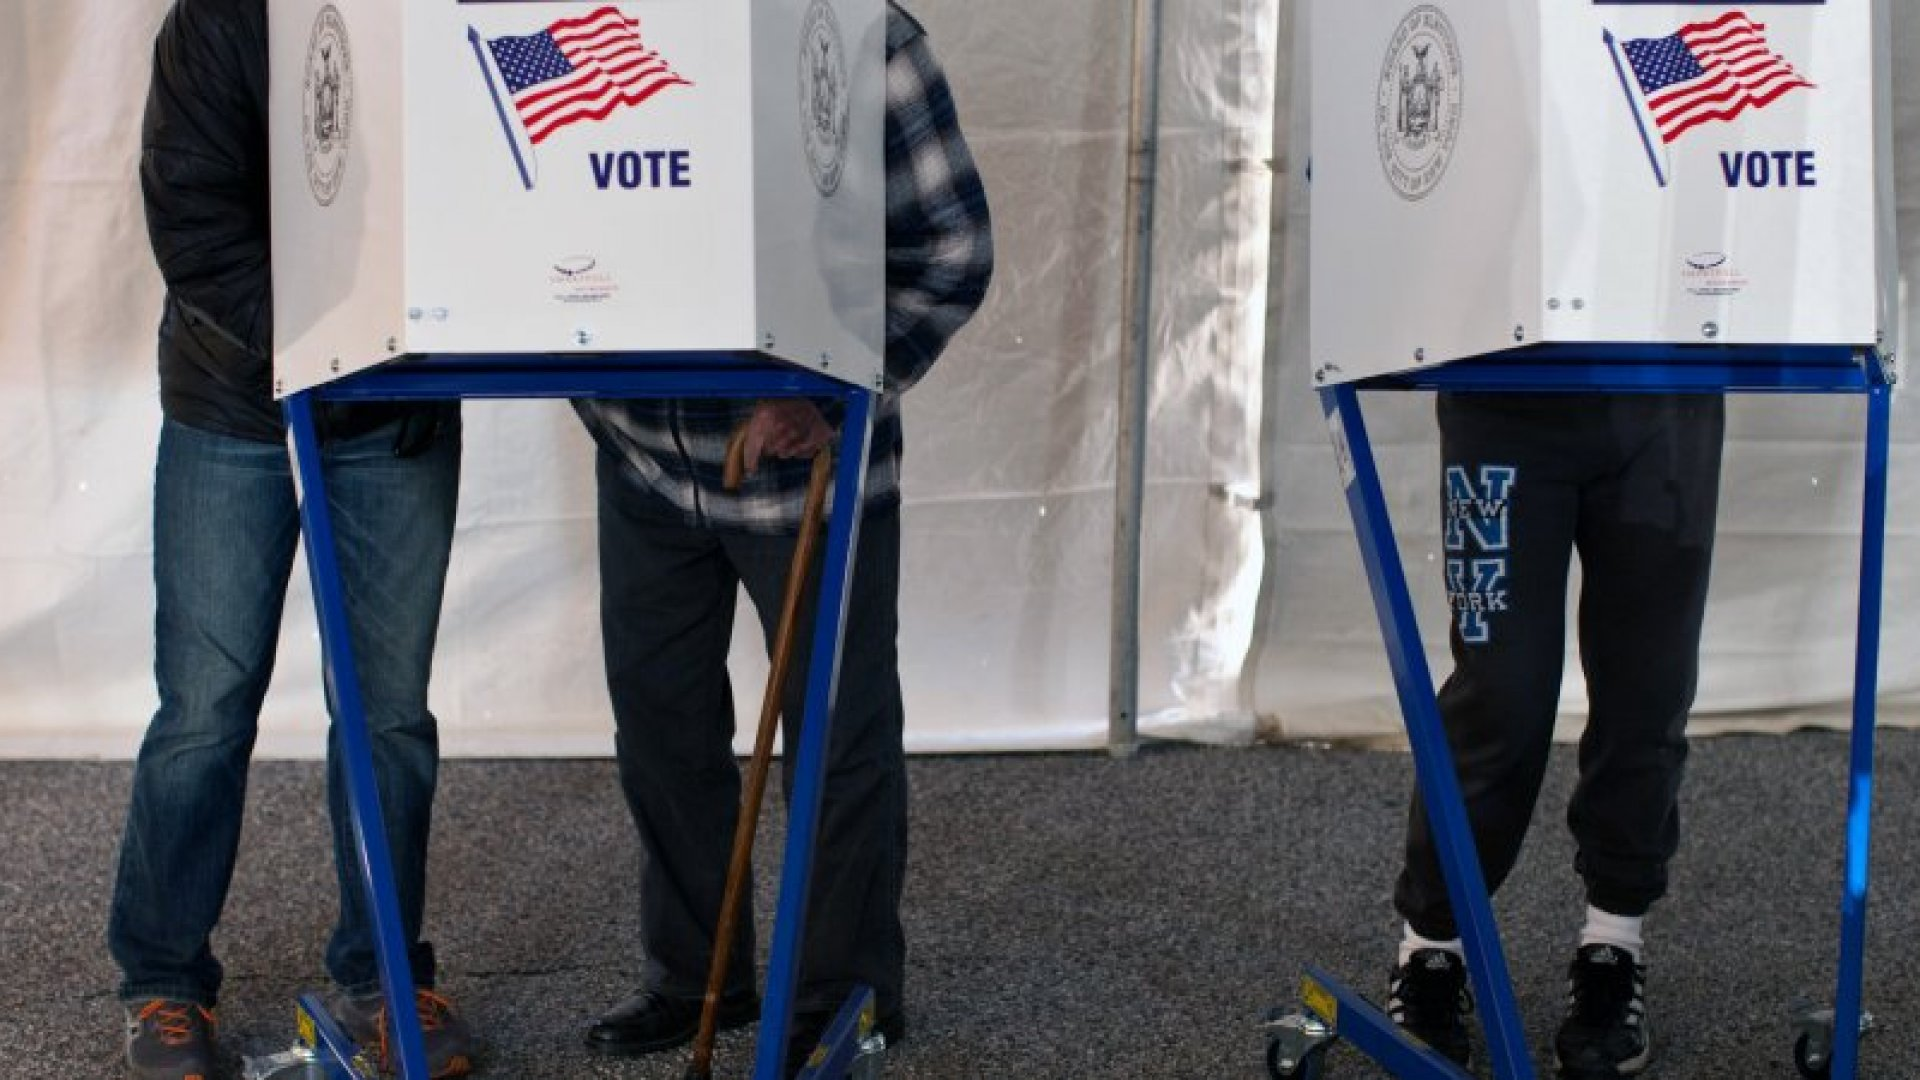 What You Need to Know About the Midterm Elections